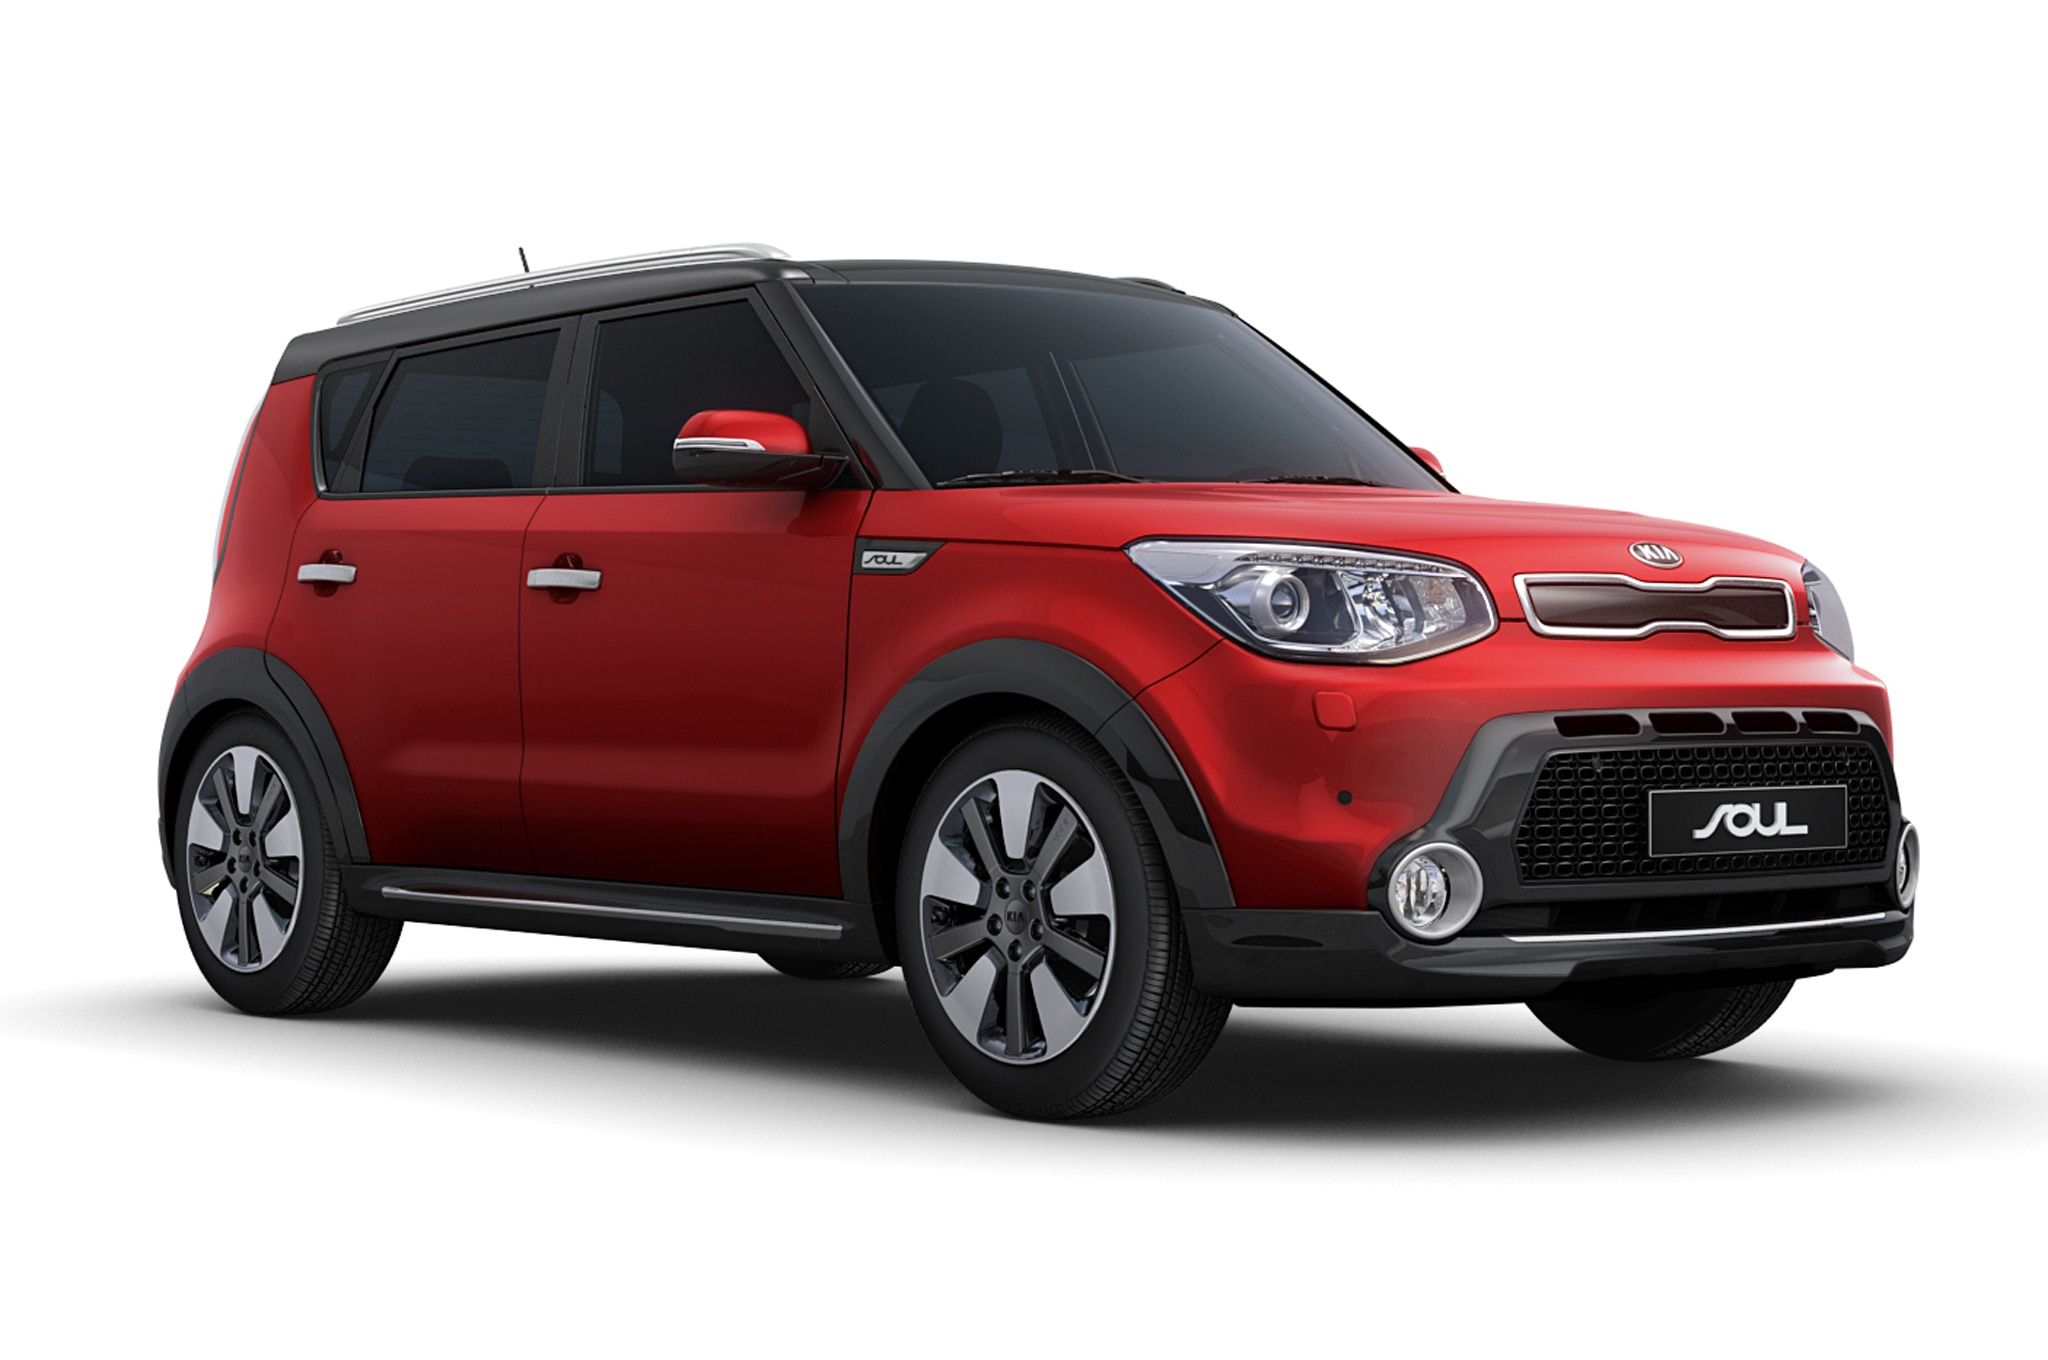 2014 Kia Soul Euro Spec Suv Pack Front Three Quarters1